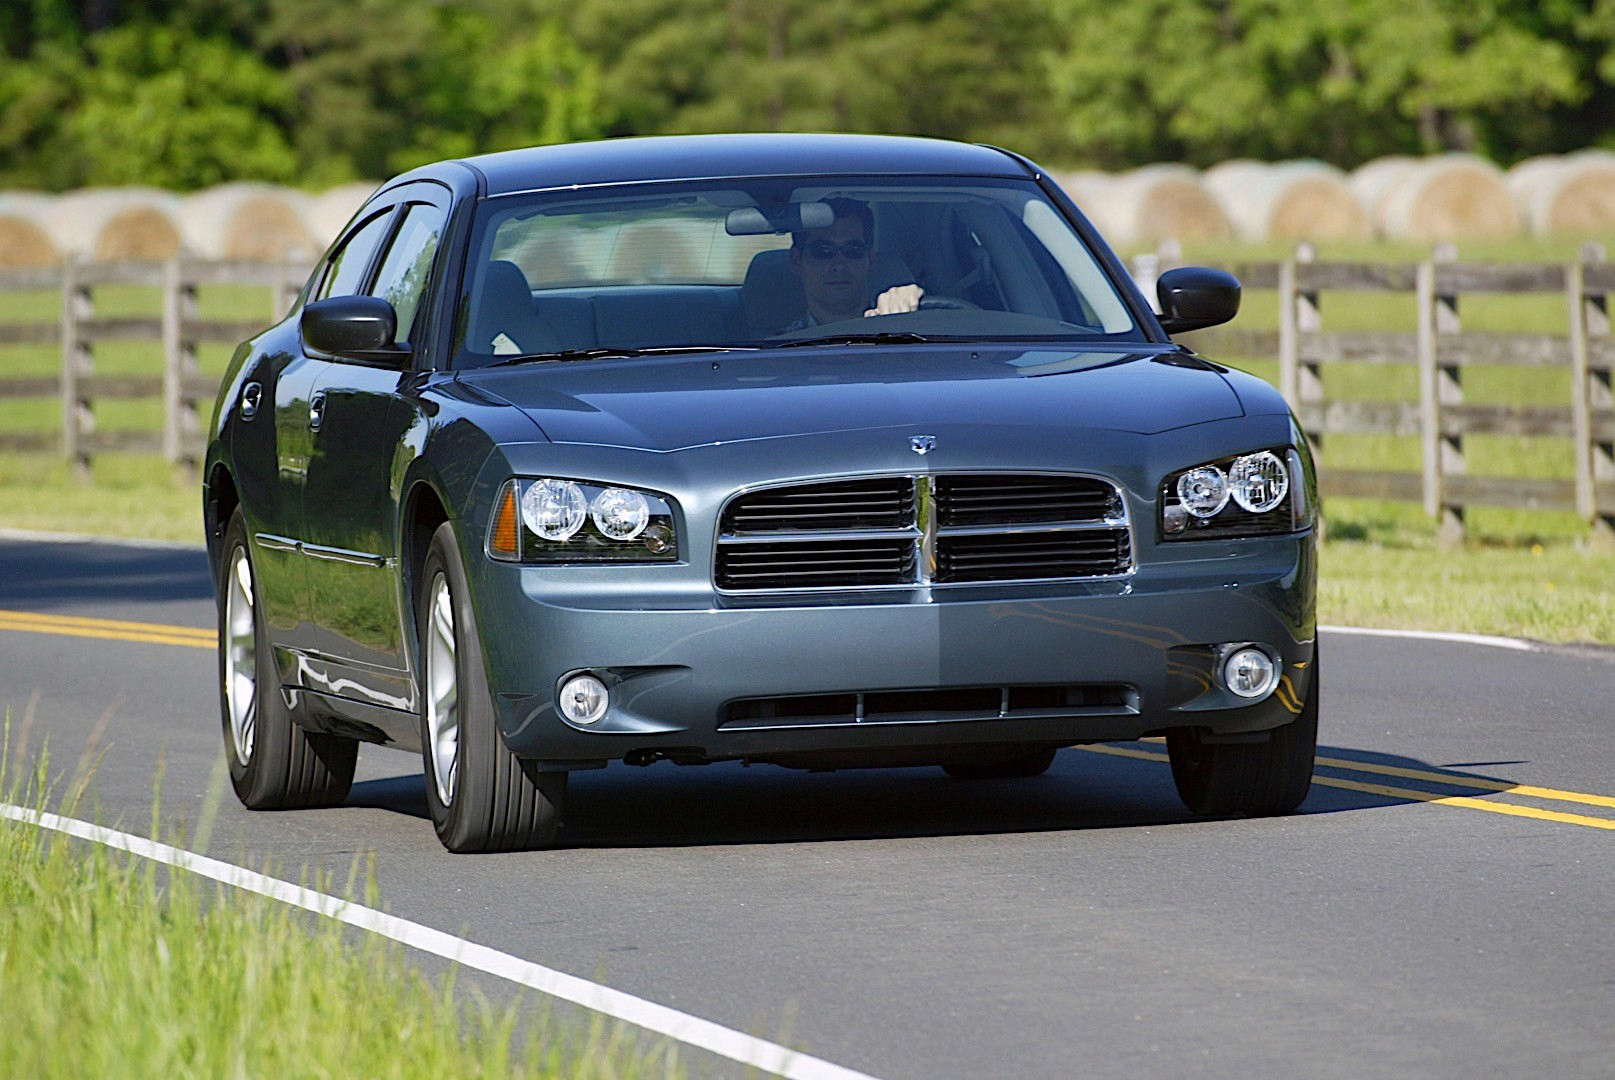 2017 Dodge Charger Hellcat >> DODGE Charger specs & photos - 2005, 2006, 2007, 2008 ...